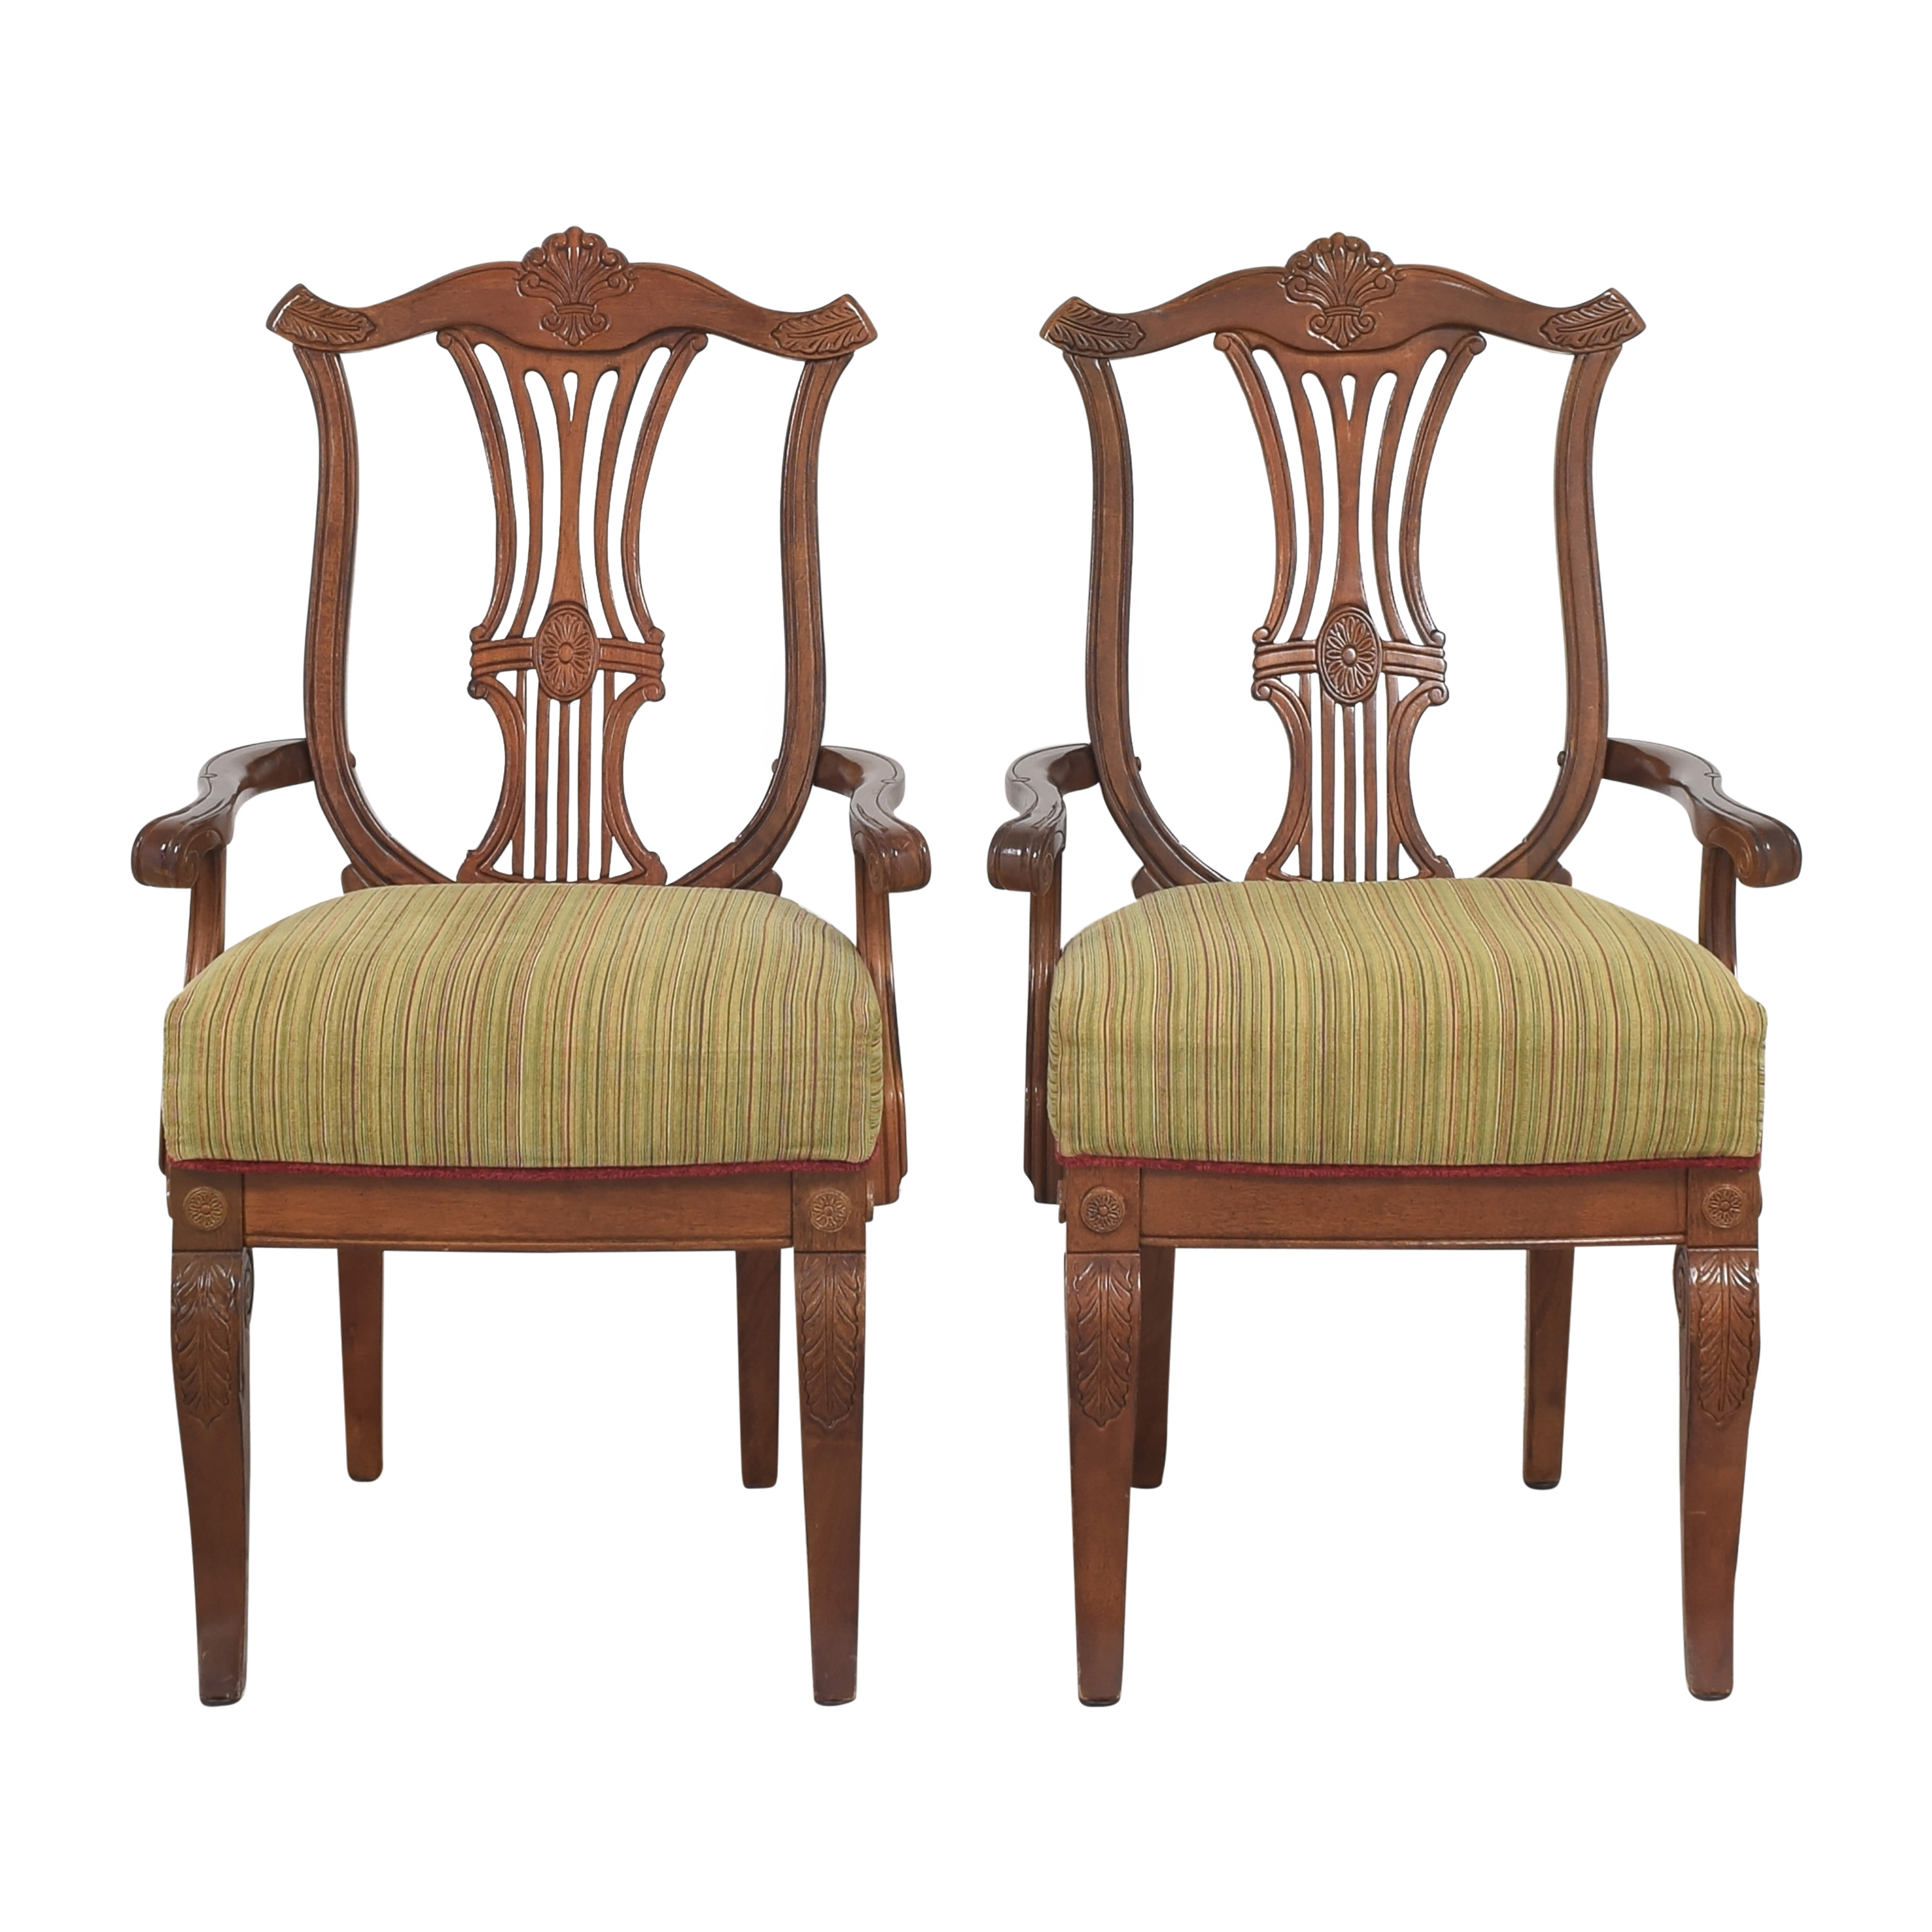 shop Universal Furniture Upholstered Dining Chairs  Universal Furniture Chairs